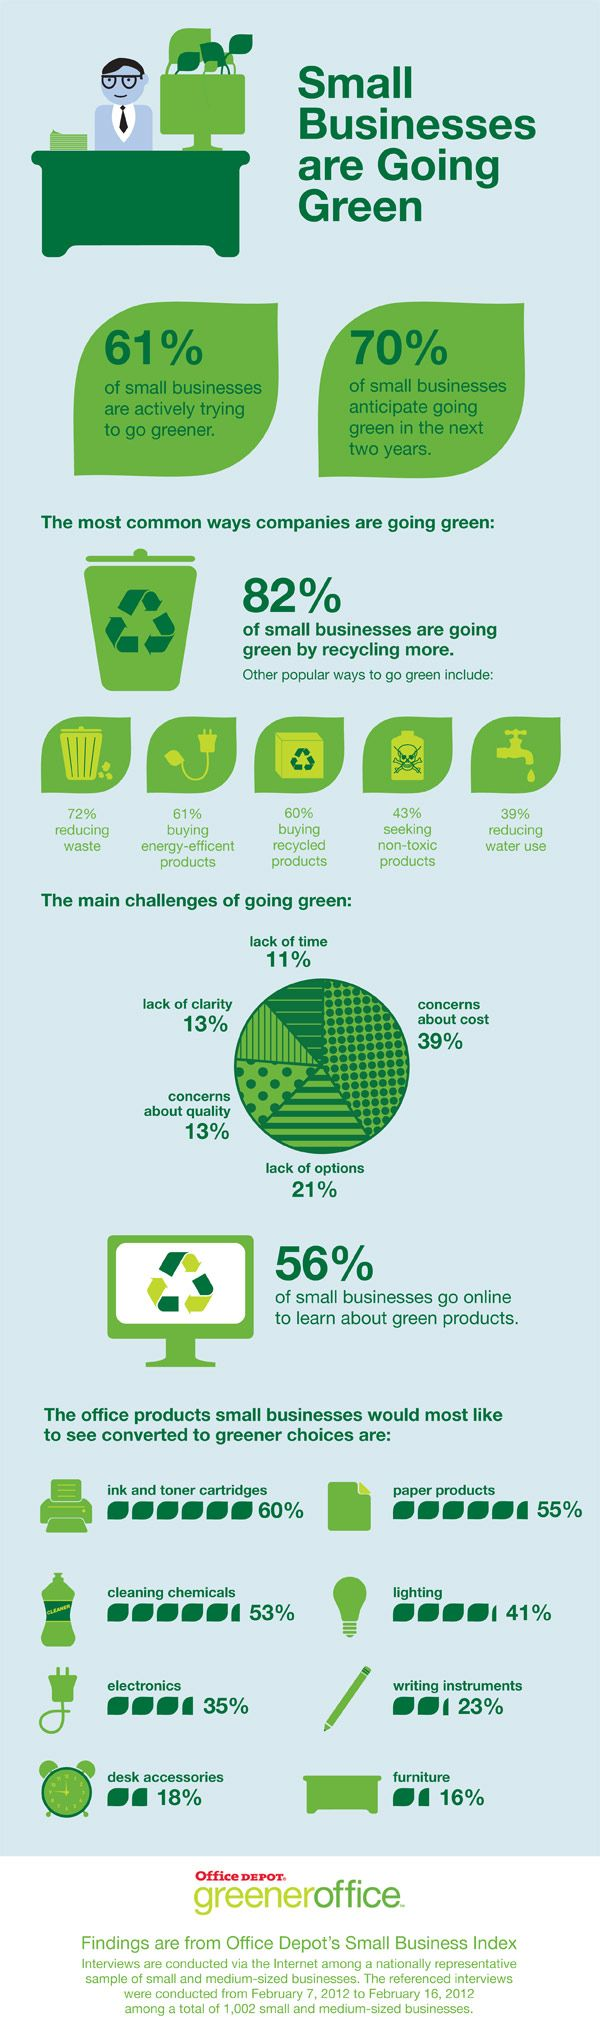 Recycling and reducing waste and water are just two ways for businesses to create a more eco-friendly workplaces - Small businesses are actively trying to go greener and 70 percent could become more environmentally conscious in the next two years. What can you do for your business? Buy recycled office furniture. Come an see us www.edinburghrecycle.co.uk, We can help you!